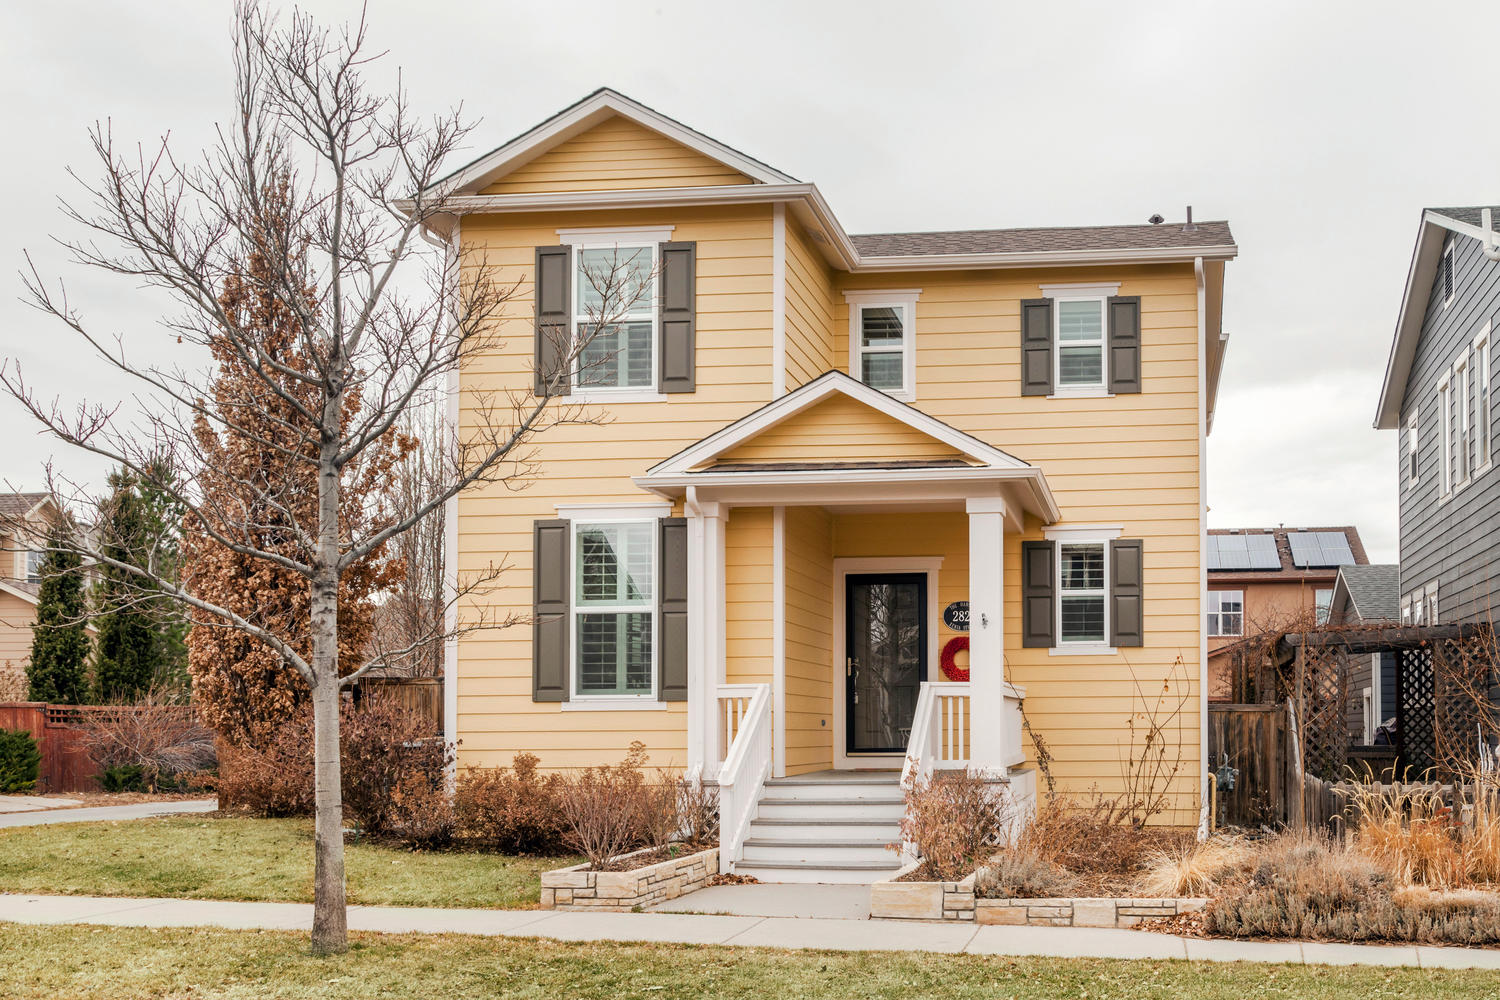 Single Family Home for Sale at Too many upgrades to list! 2821 Xenia Street Stapleton, Denver, Colorado, 80238 United States